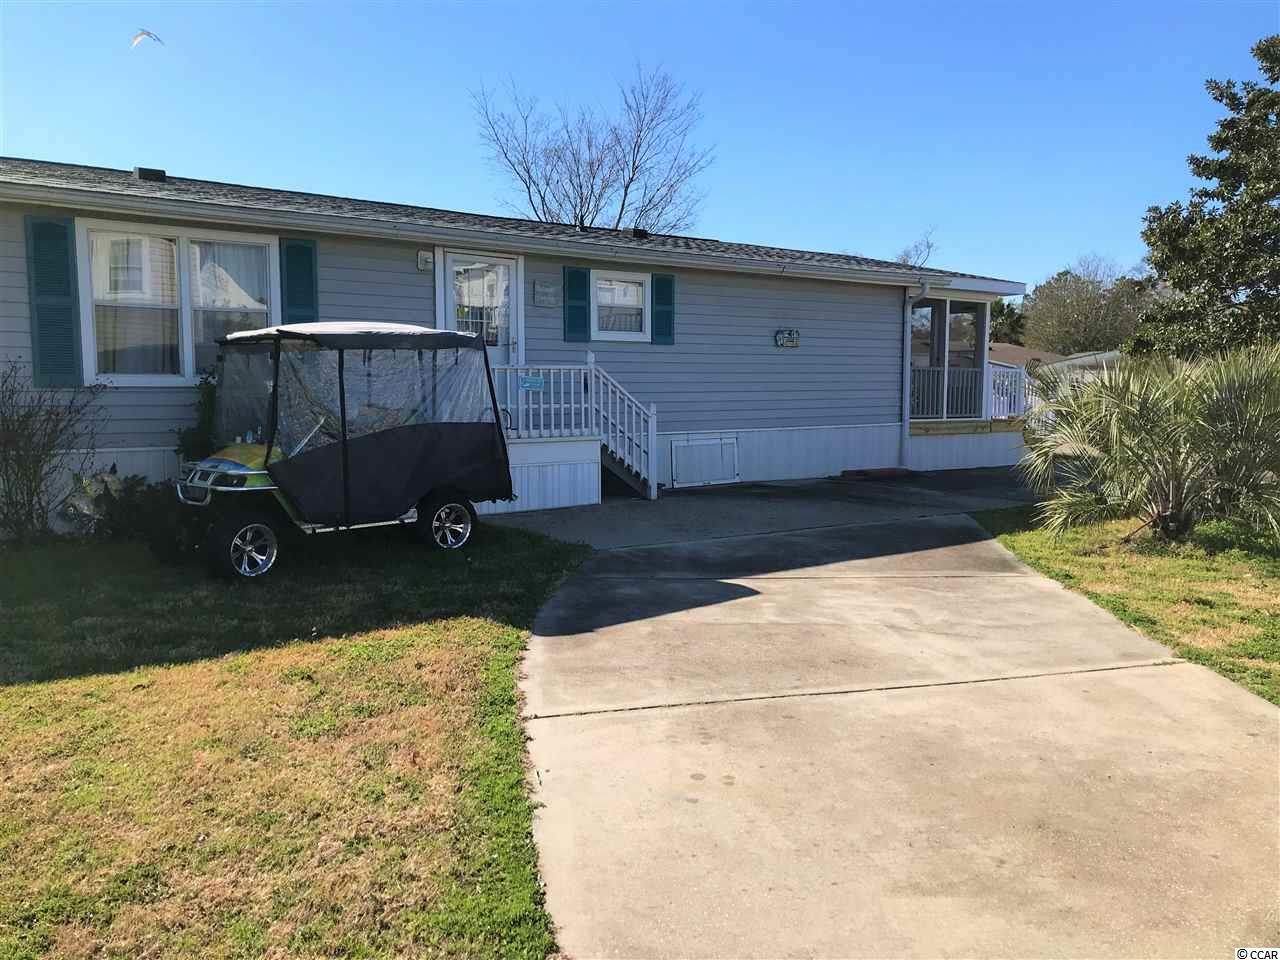 Lovely 3 bedroom 2 full bath home that has been totally renovated.  New stainless appliances and furnishings  with updated wood laminate and tile flooring.  New HVAC system, duct work and plumbing 2020.  Architectural shingled roof - 2018.  Screened in porch for those lazy afternoons.  Large living area - flat screen television and sliders leading out to newly added enclosed porch with stone e-facing.  Master bedroom with access to large bathroom with new vanity and decor.  Second and third bedrooms share full bath with walk in shower and new vanity.  Oceanside Village offers two outdoor pools and water parks, indoor pools, fitness and community centers, basketball courts and of course OCEAN FRONT GOLF CART PARKING FOR OWNERS AND GUESTS beside the Conch Cafe.